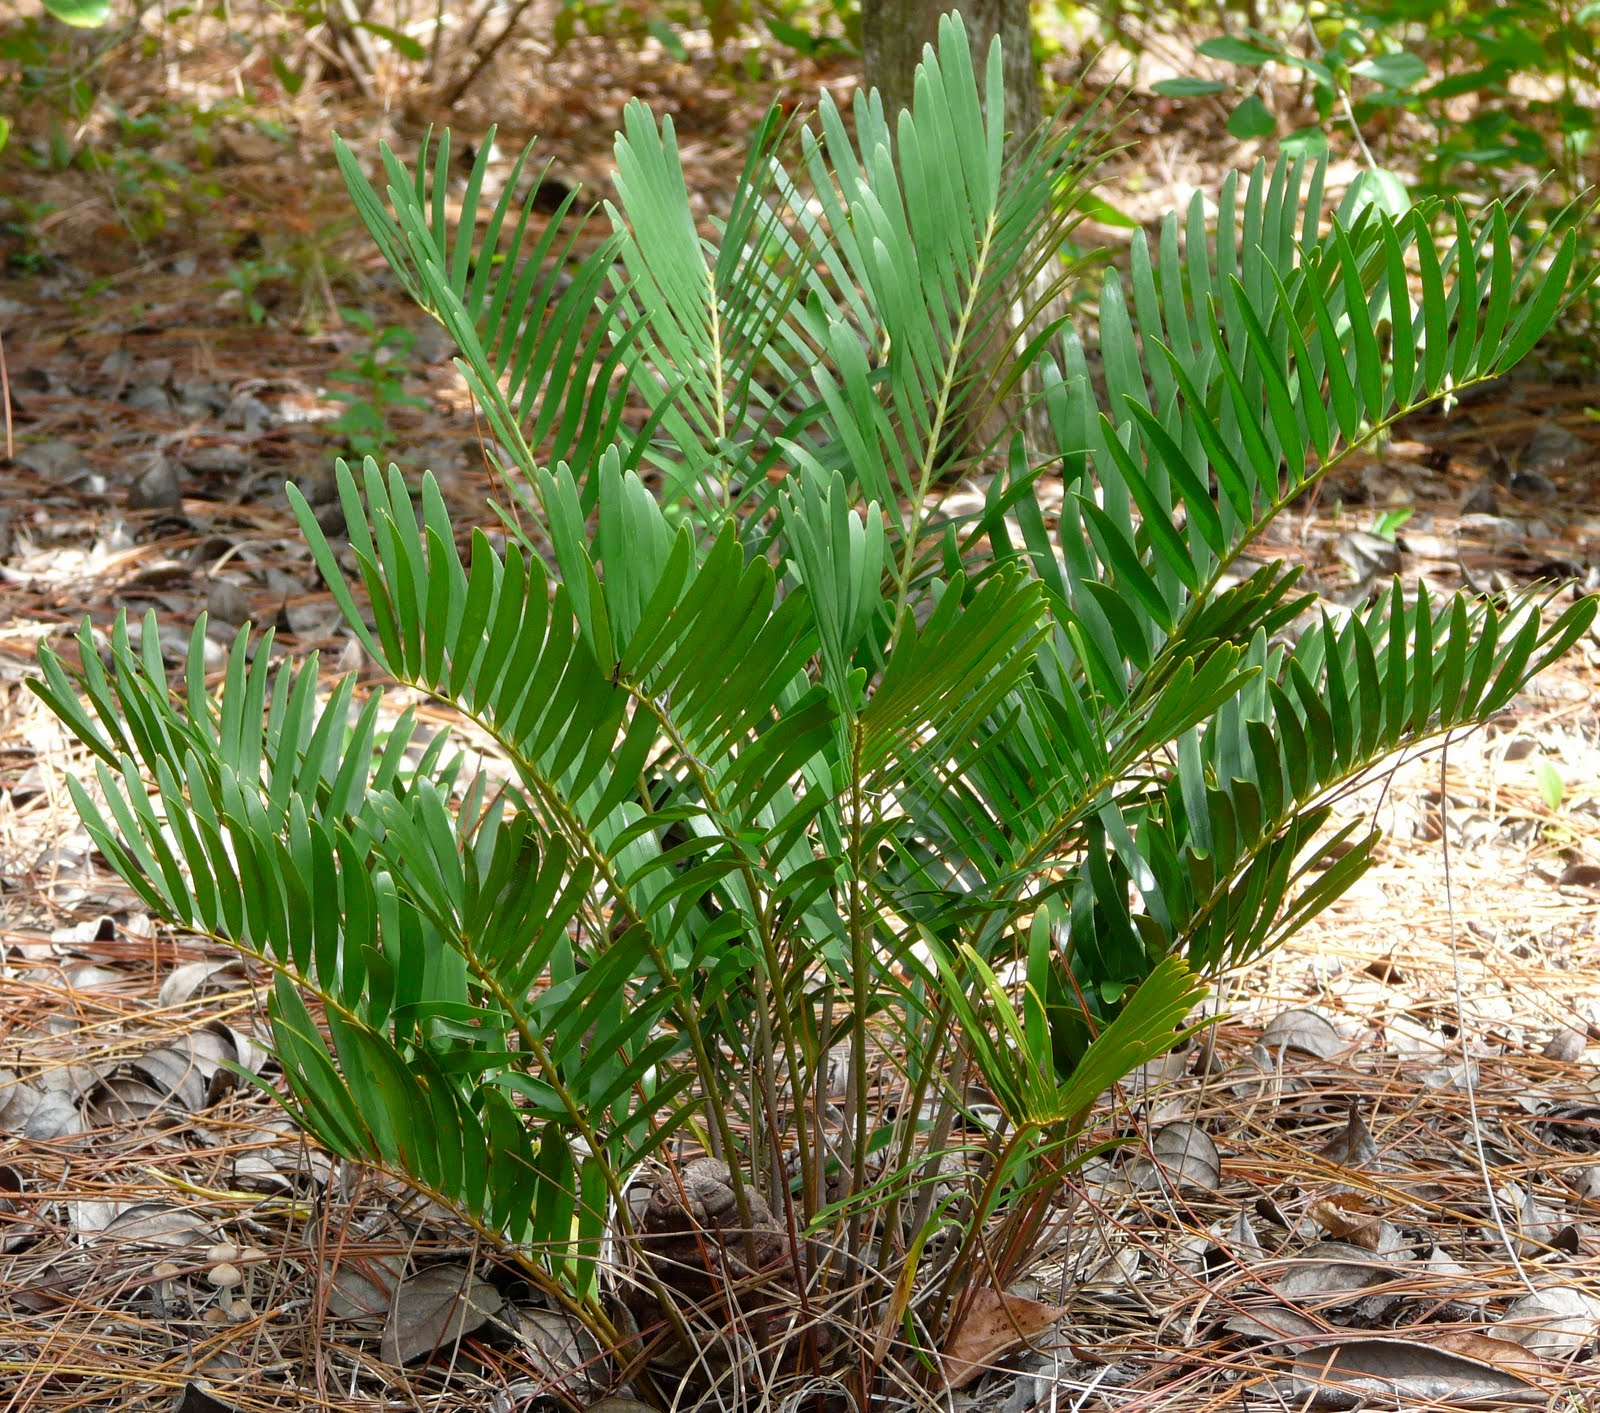 Coonties Captivating Cycads